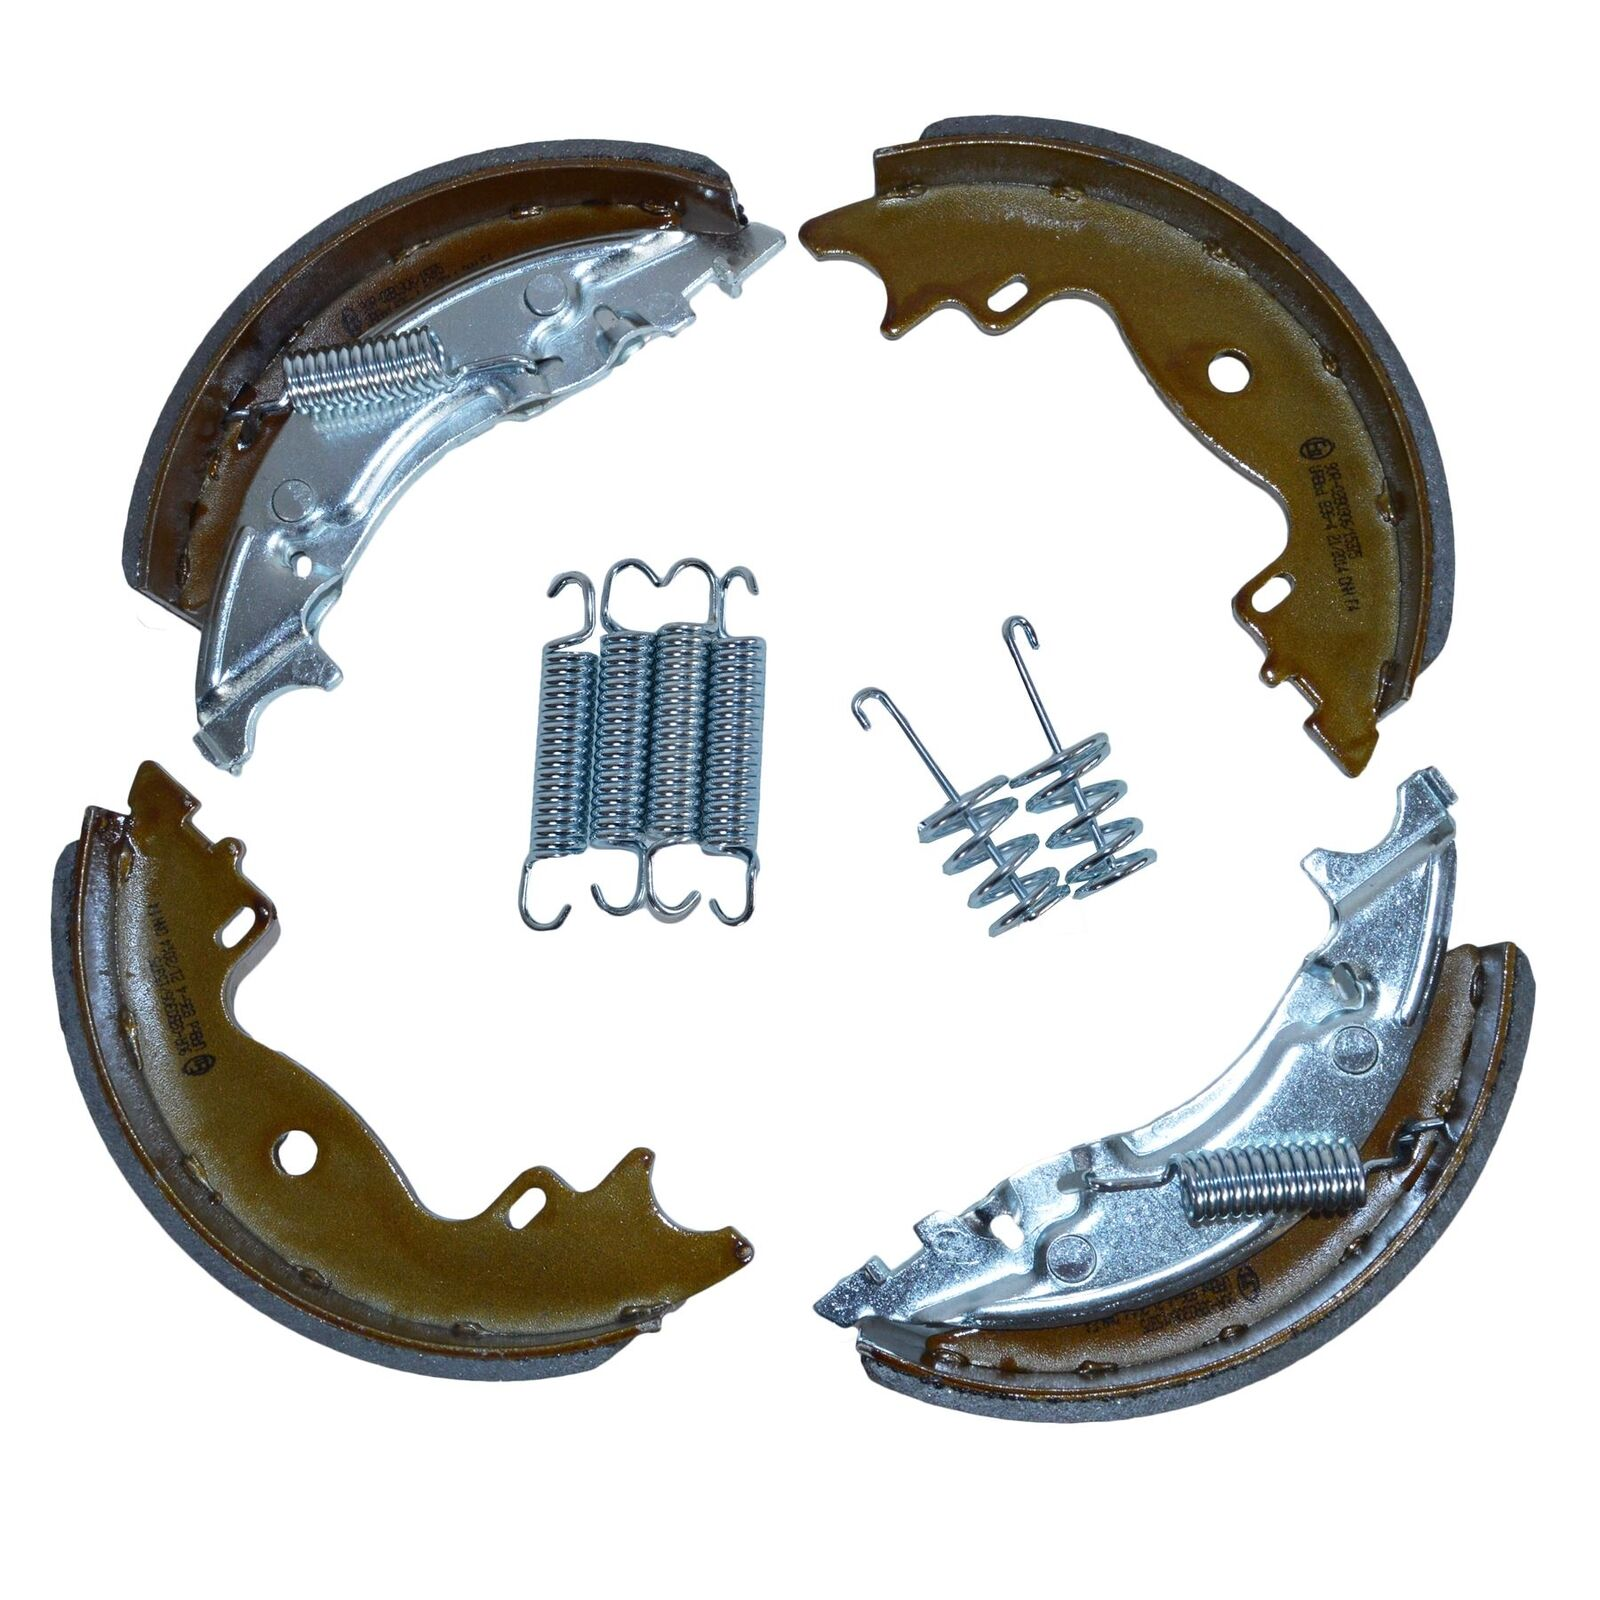 Trailer Brake shoes Replacements Spring Kit 160 x 35mm For KNOTT Brian James